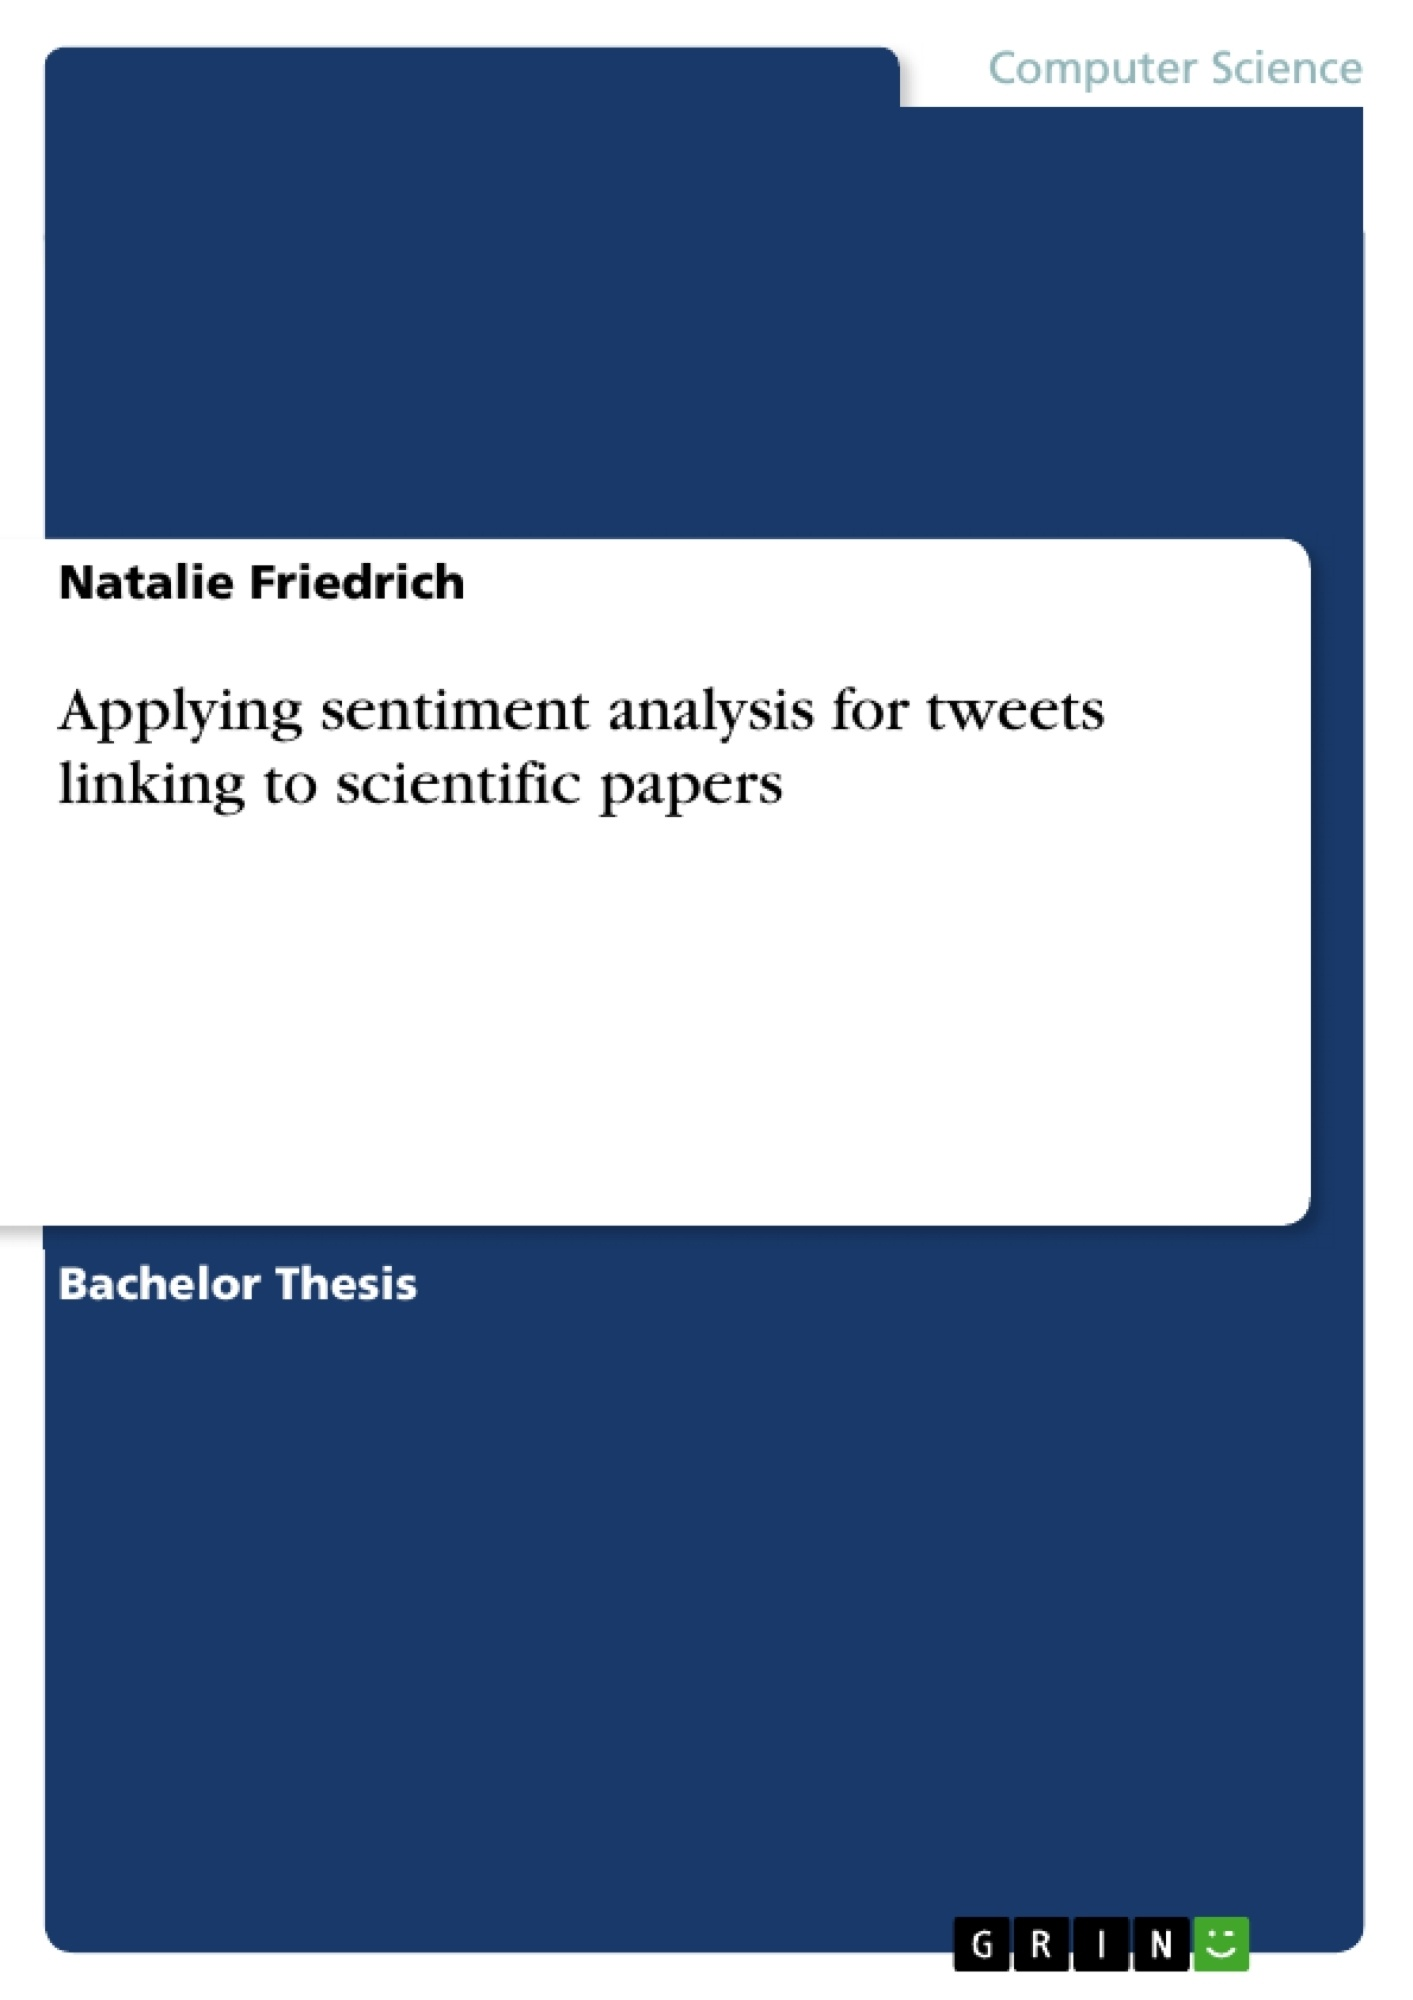 Title: Applying sentiment analysis for tweets linking to scientific papers